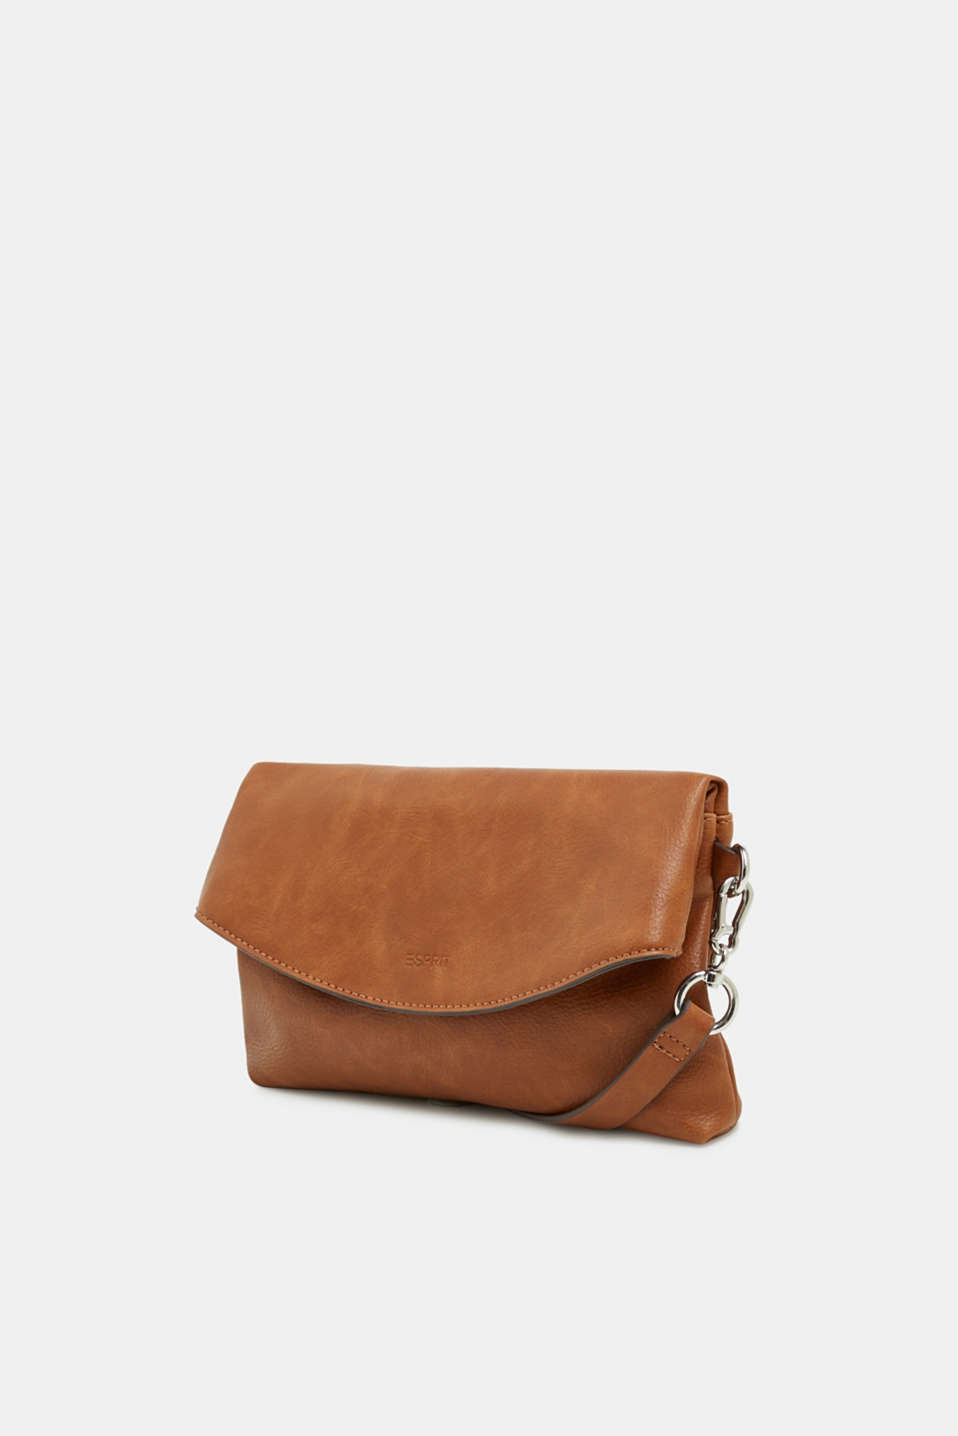 Flapover bag in faux leather, RUST BROWN, detail image number 2